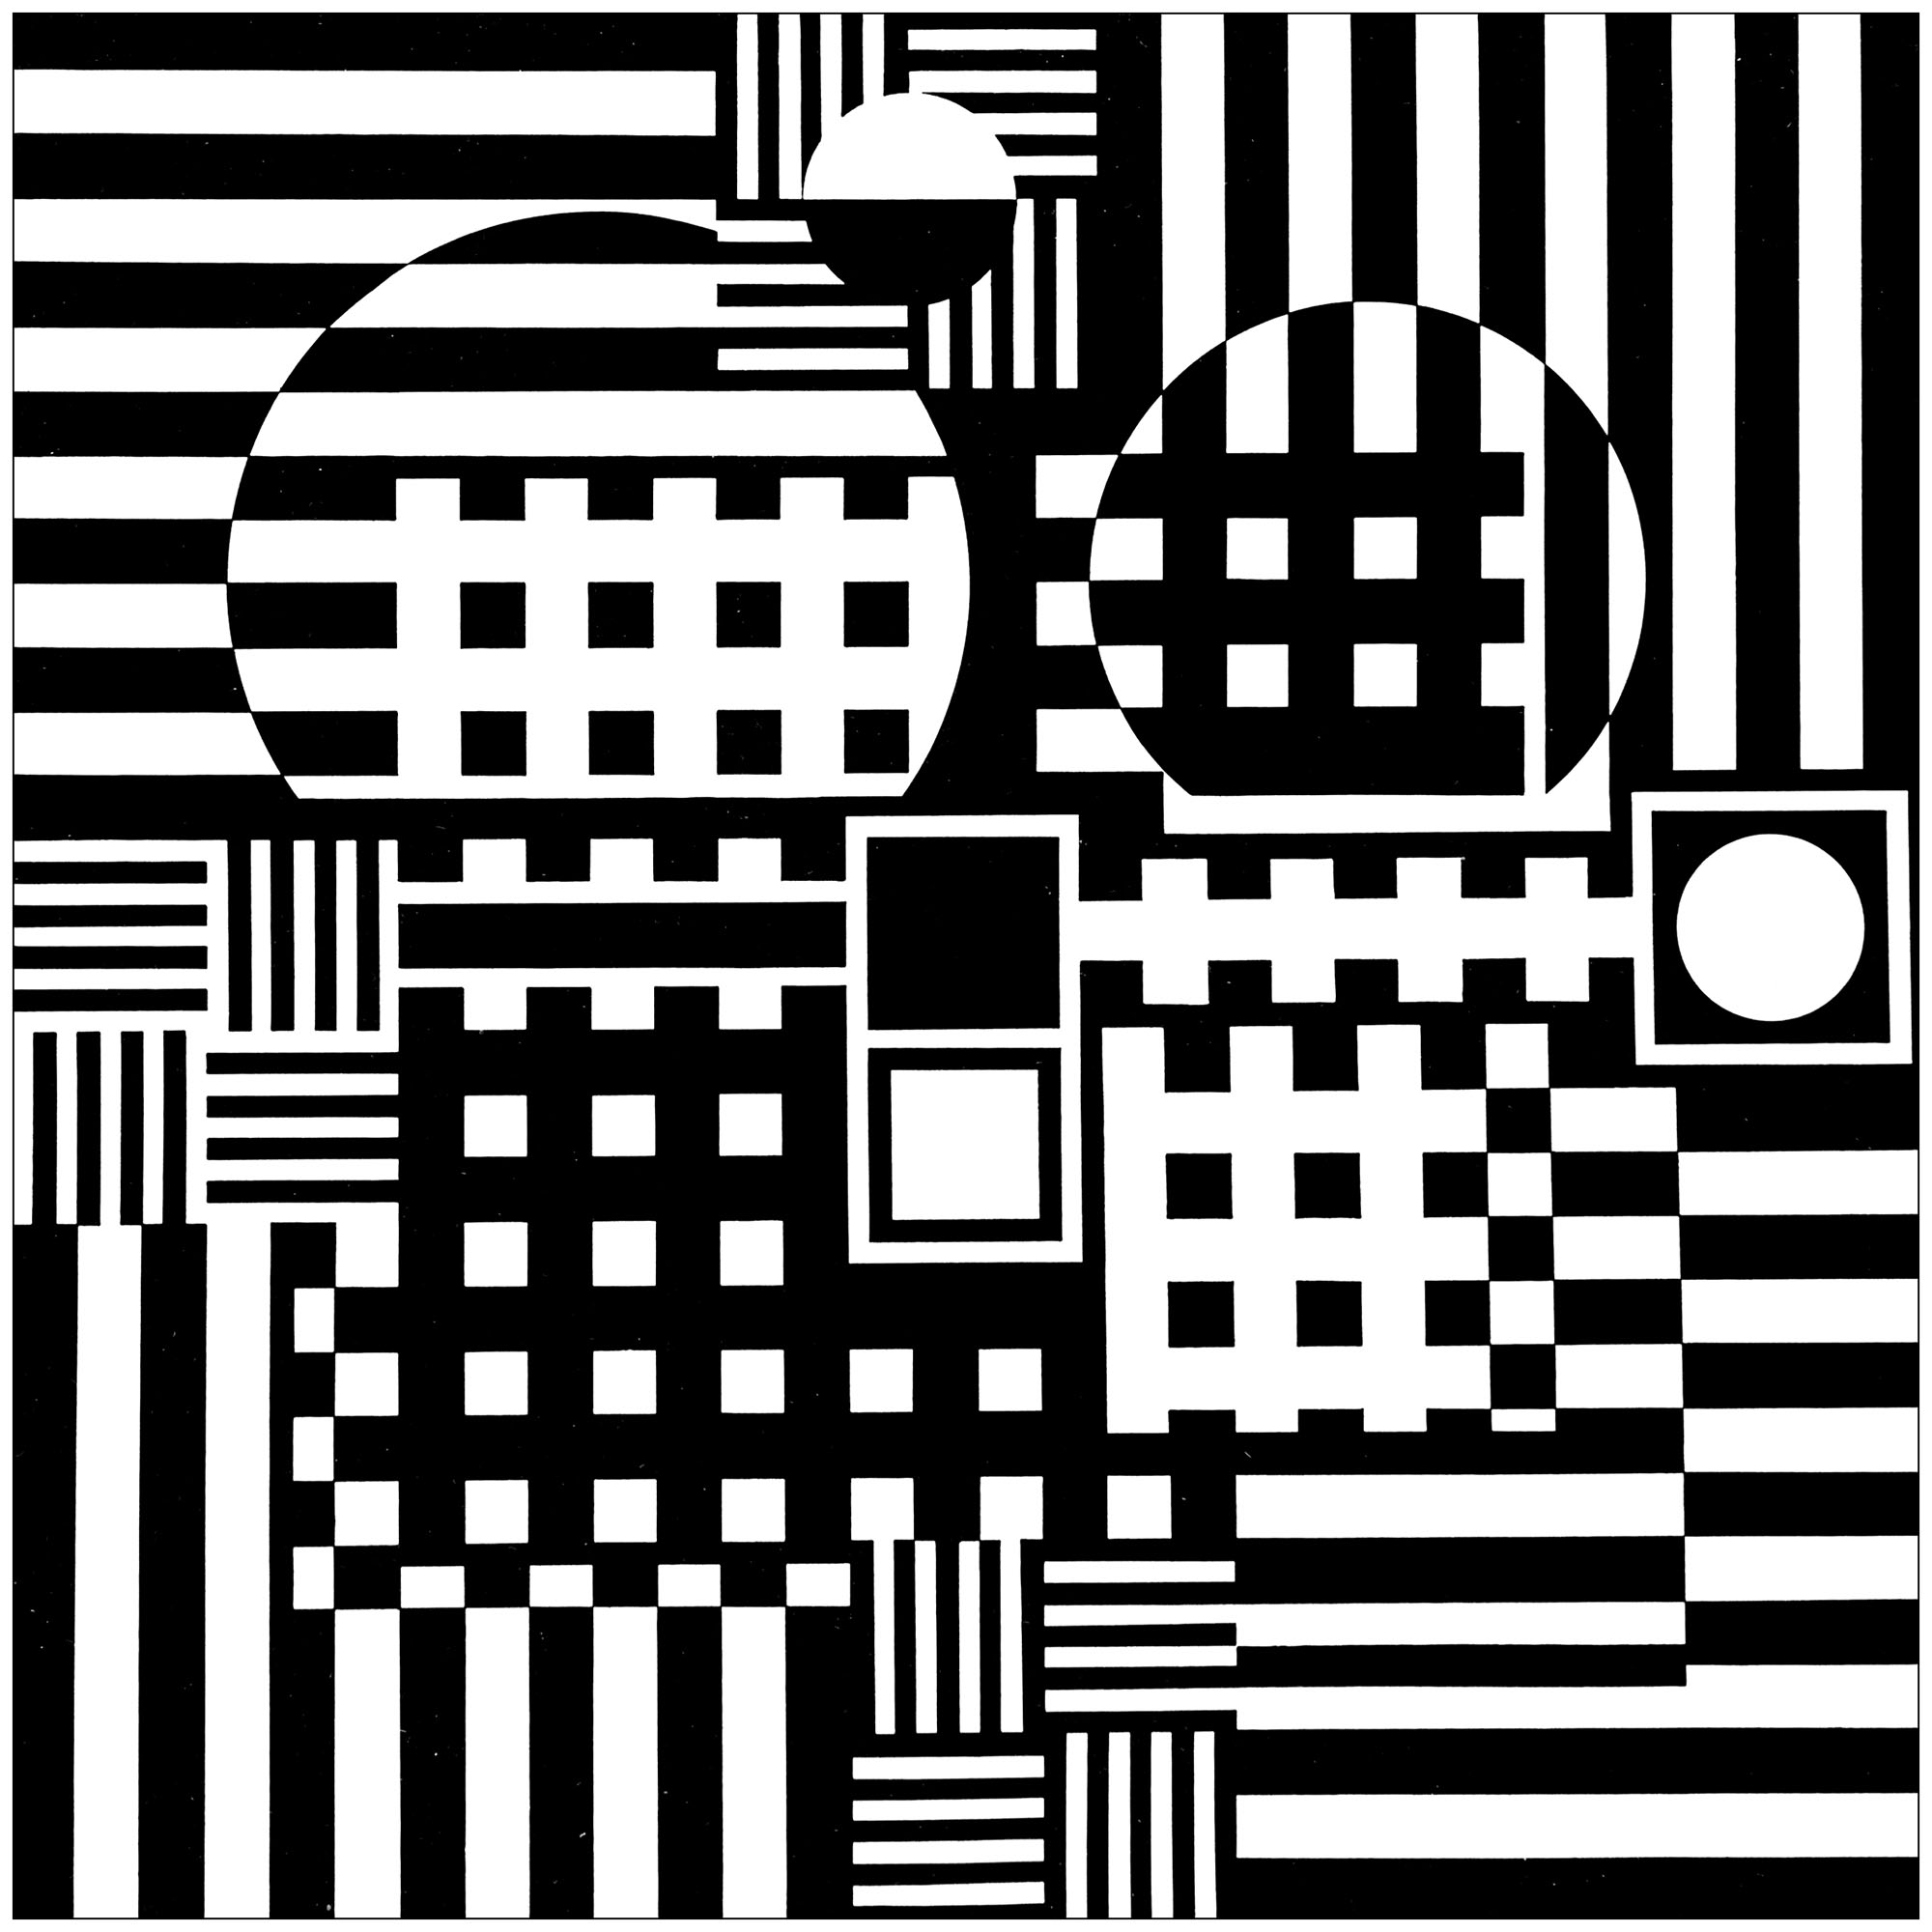 Coloring page created from Jeruza (1957) by Victor Vasarely